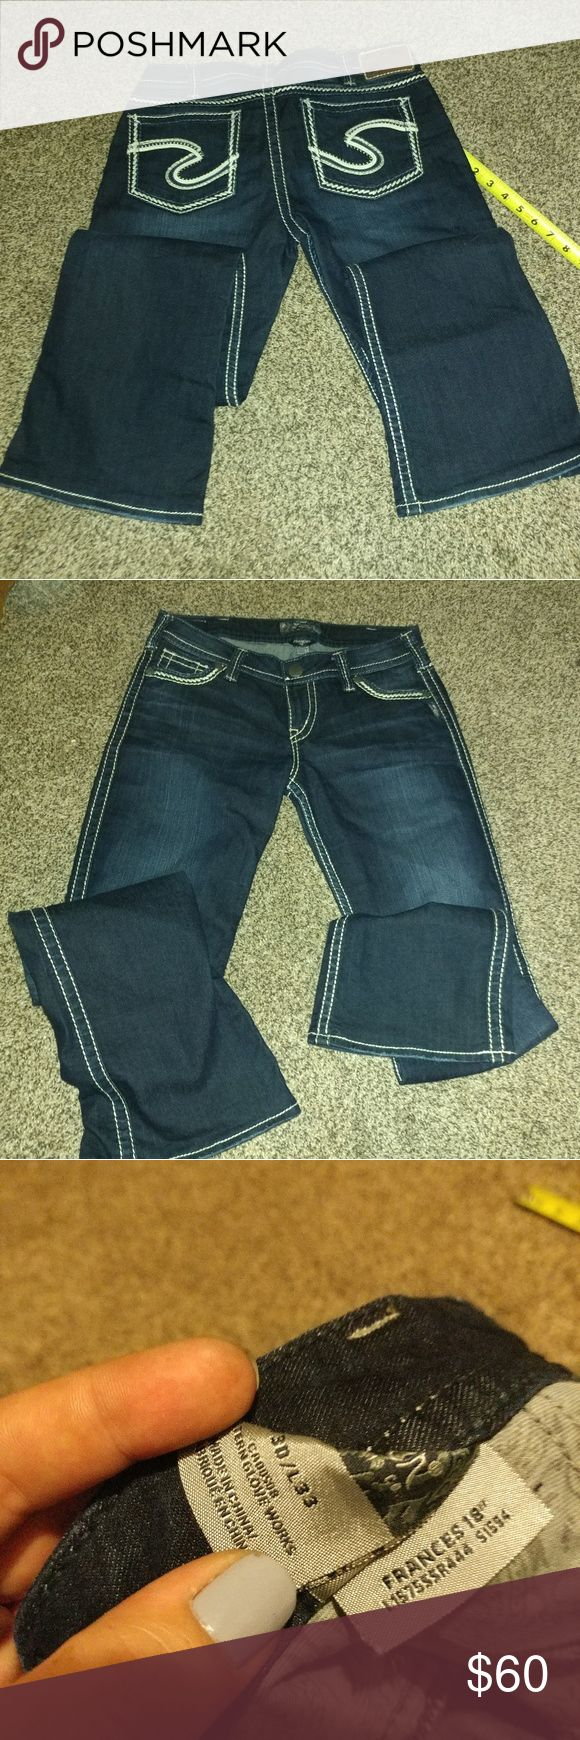 "30x33 NWOT womens silver jeans Frances 18"" Dark blue wash perfect nwot, selling for a friend! Feel free to ask any questions and thanks for looking! Silver Jeans Jeans"